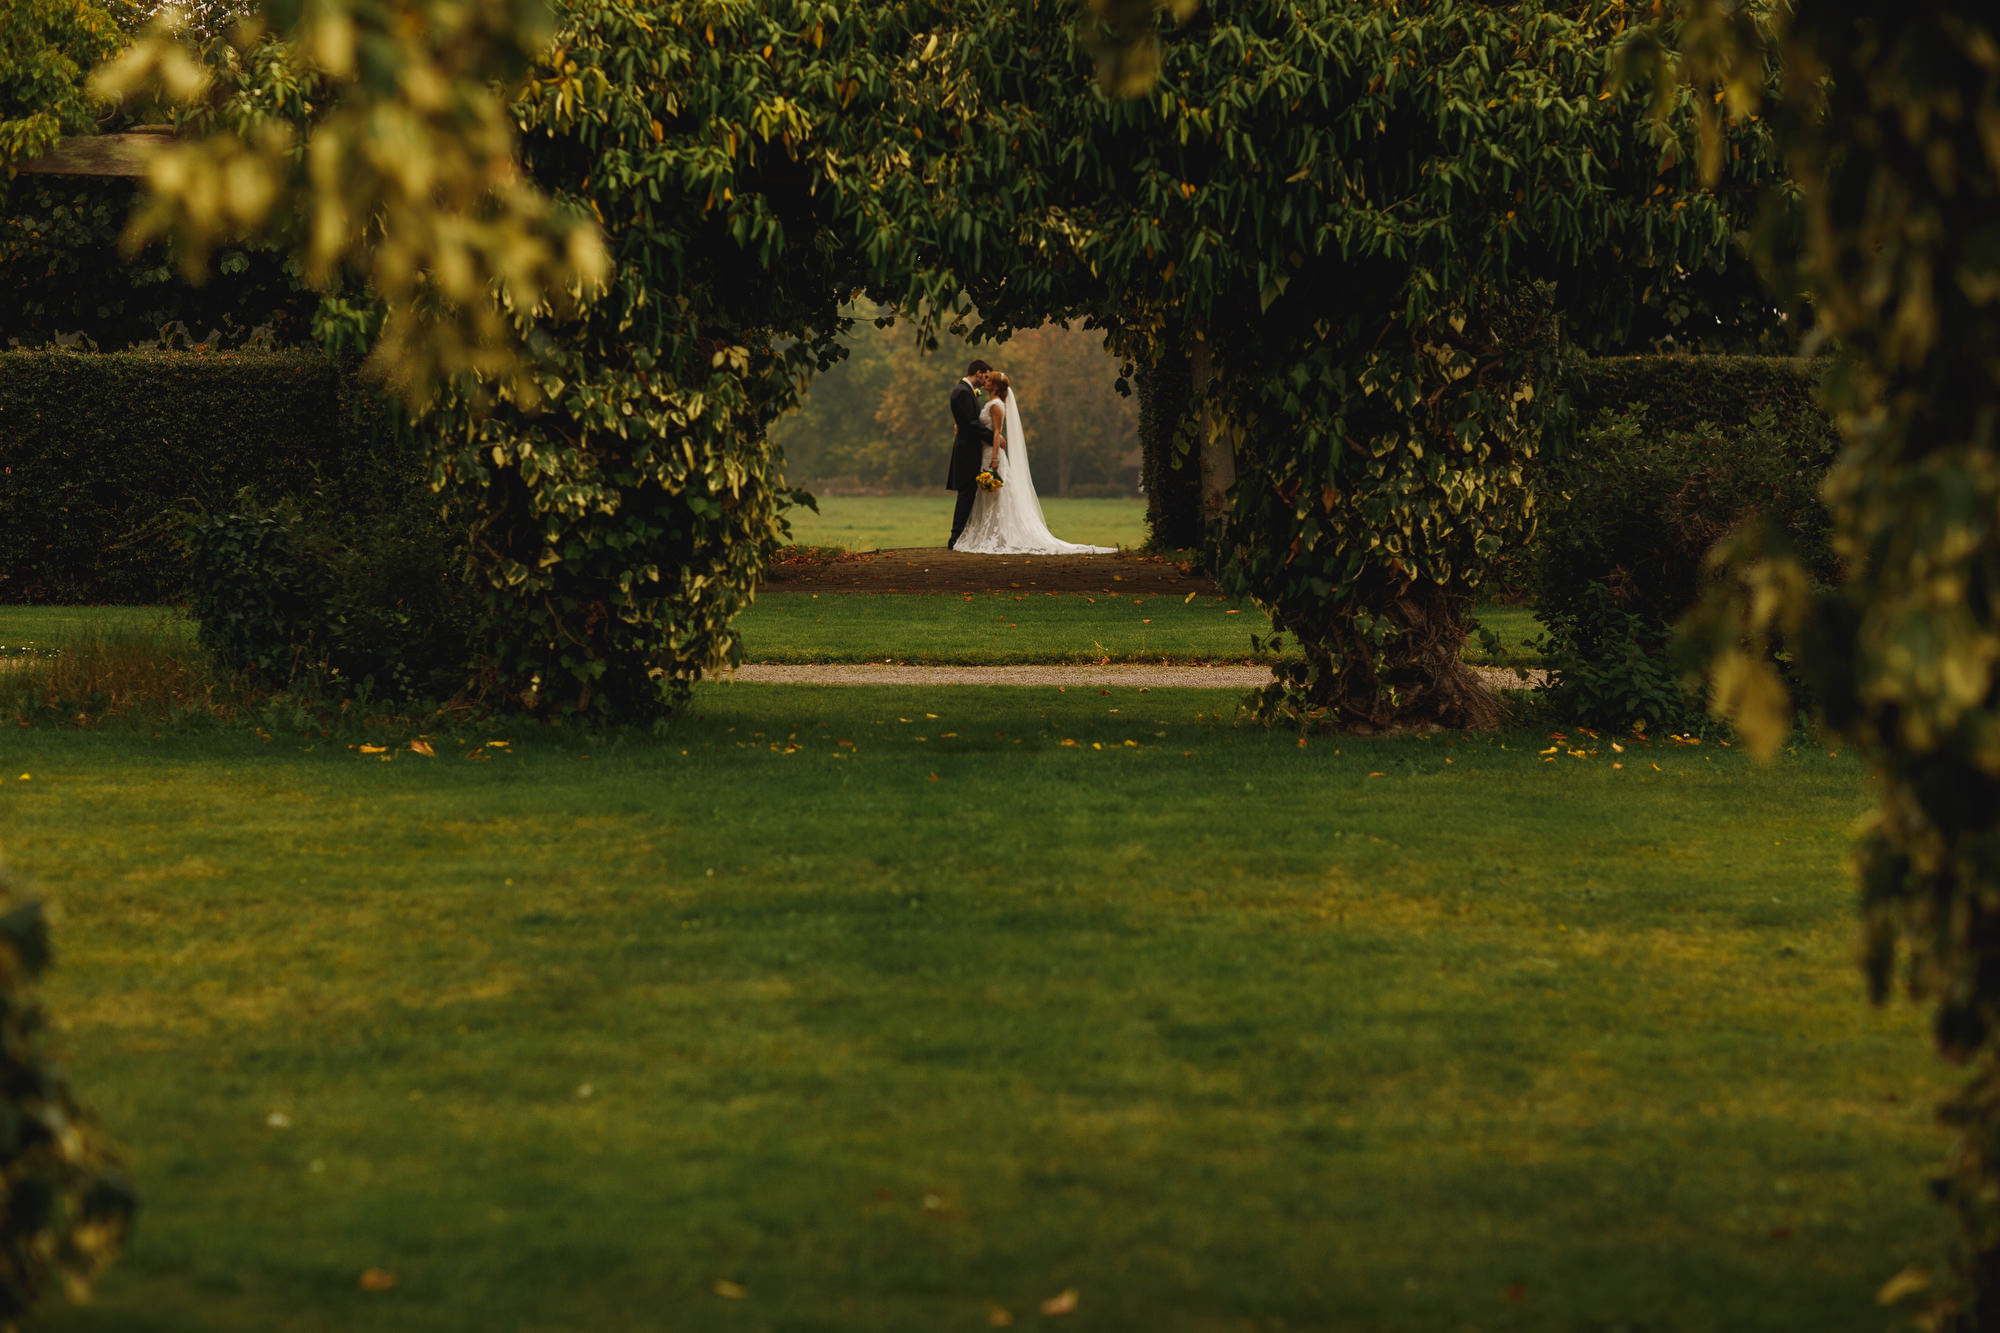 thornton-manor-wedding-photography-sarah-rich-34